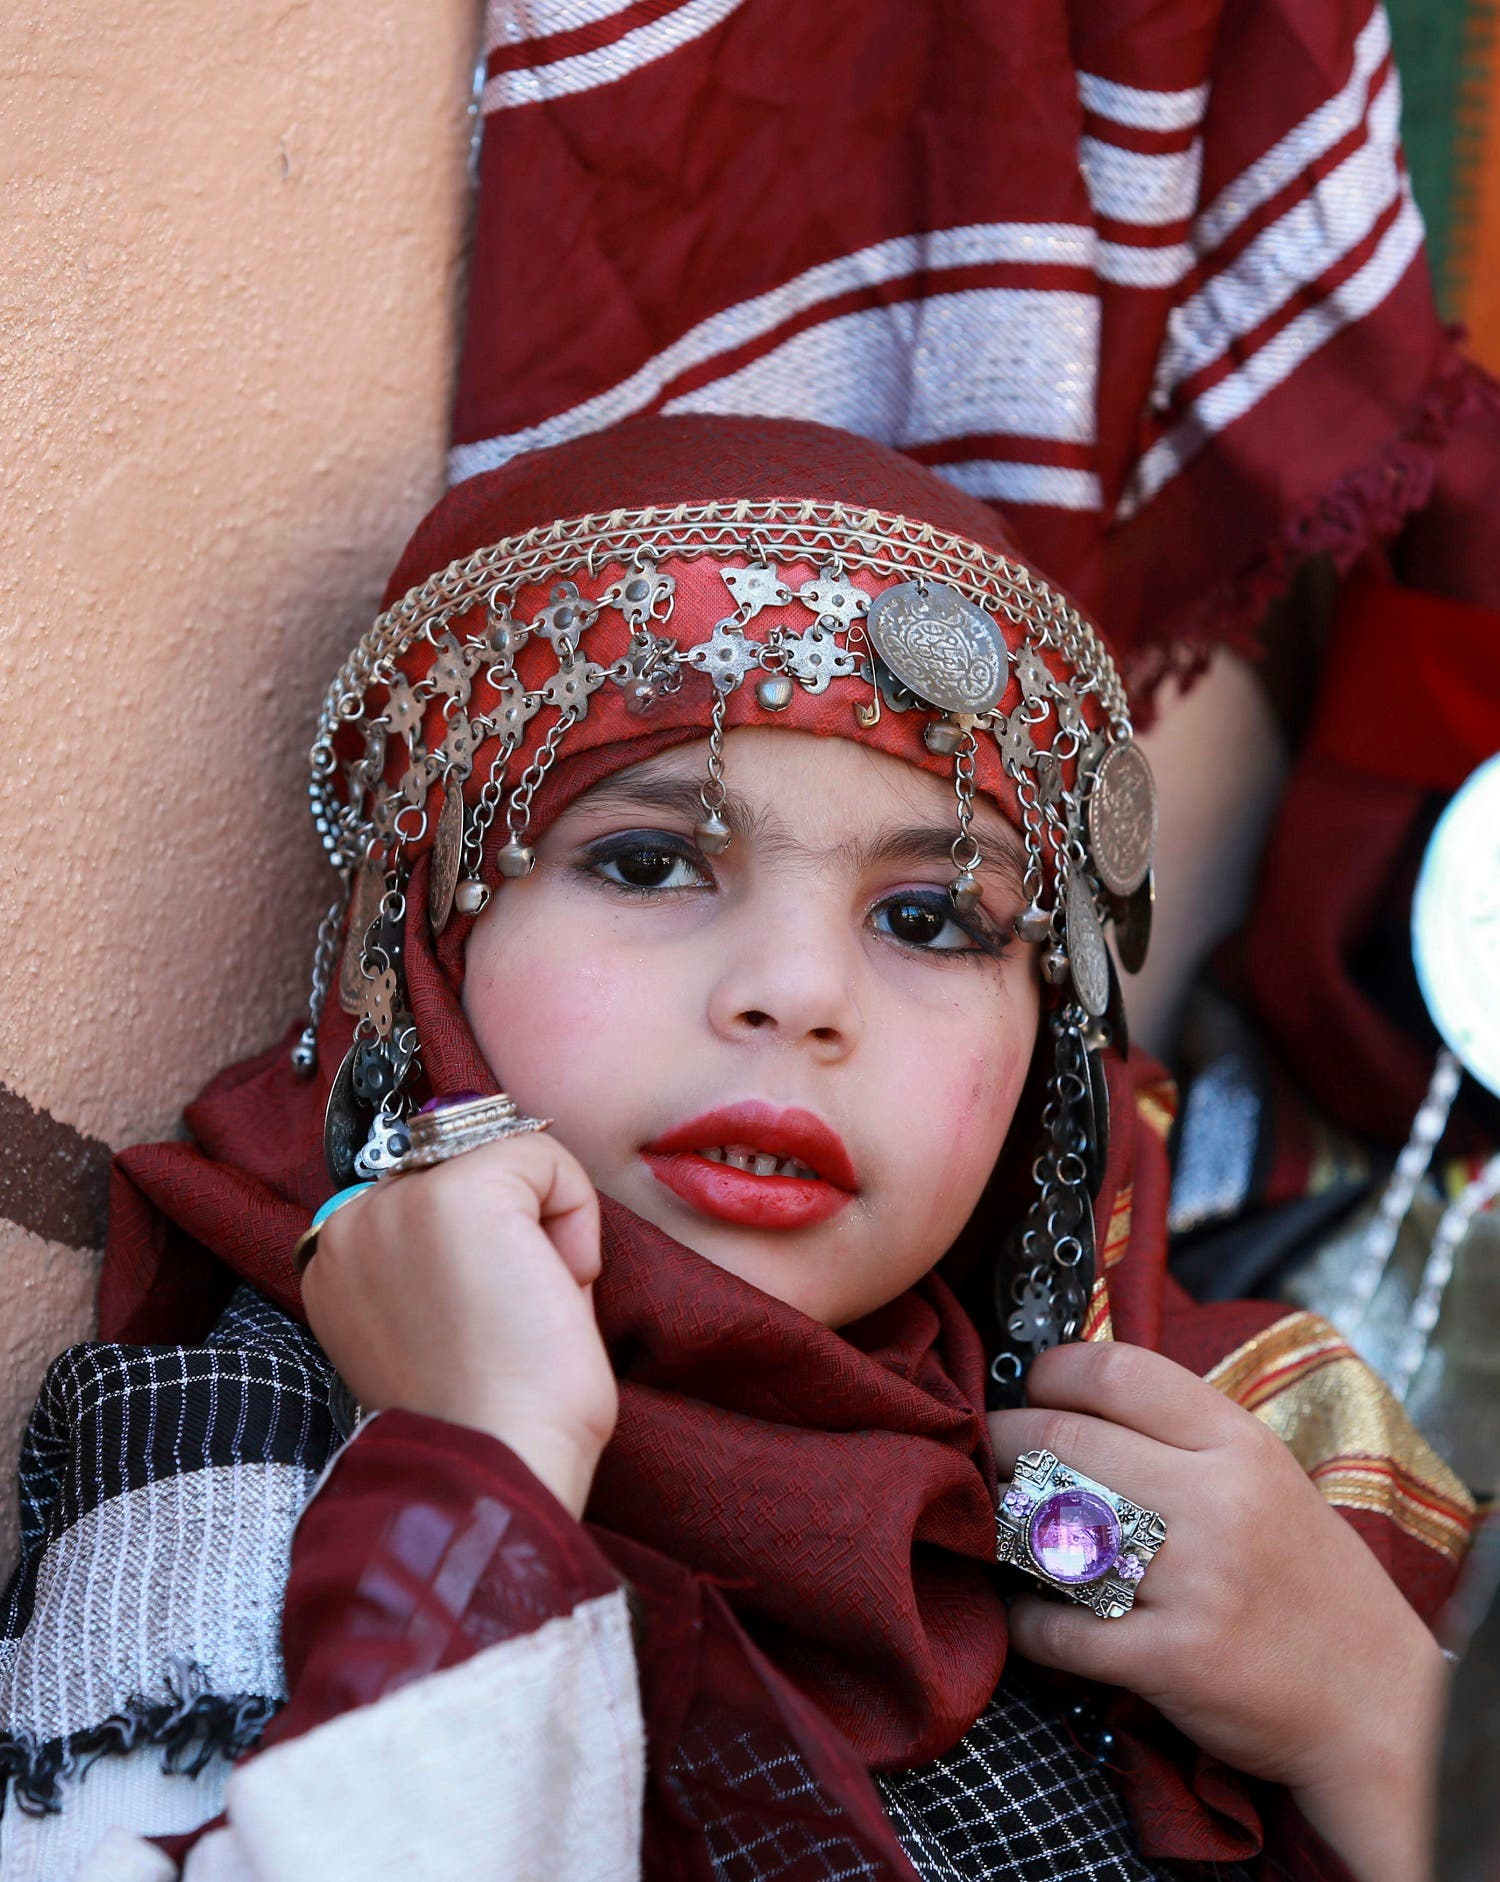 A girl wears a traditional costume during Children's Day celebrations at a school in Benghazi, Libya March 21, 2016. (Photo: Reuters)